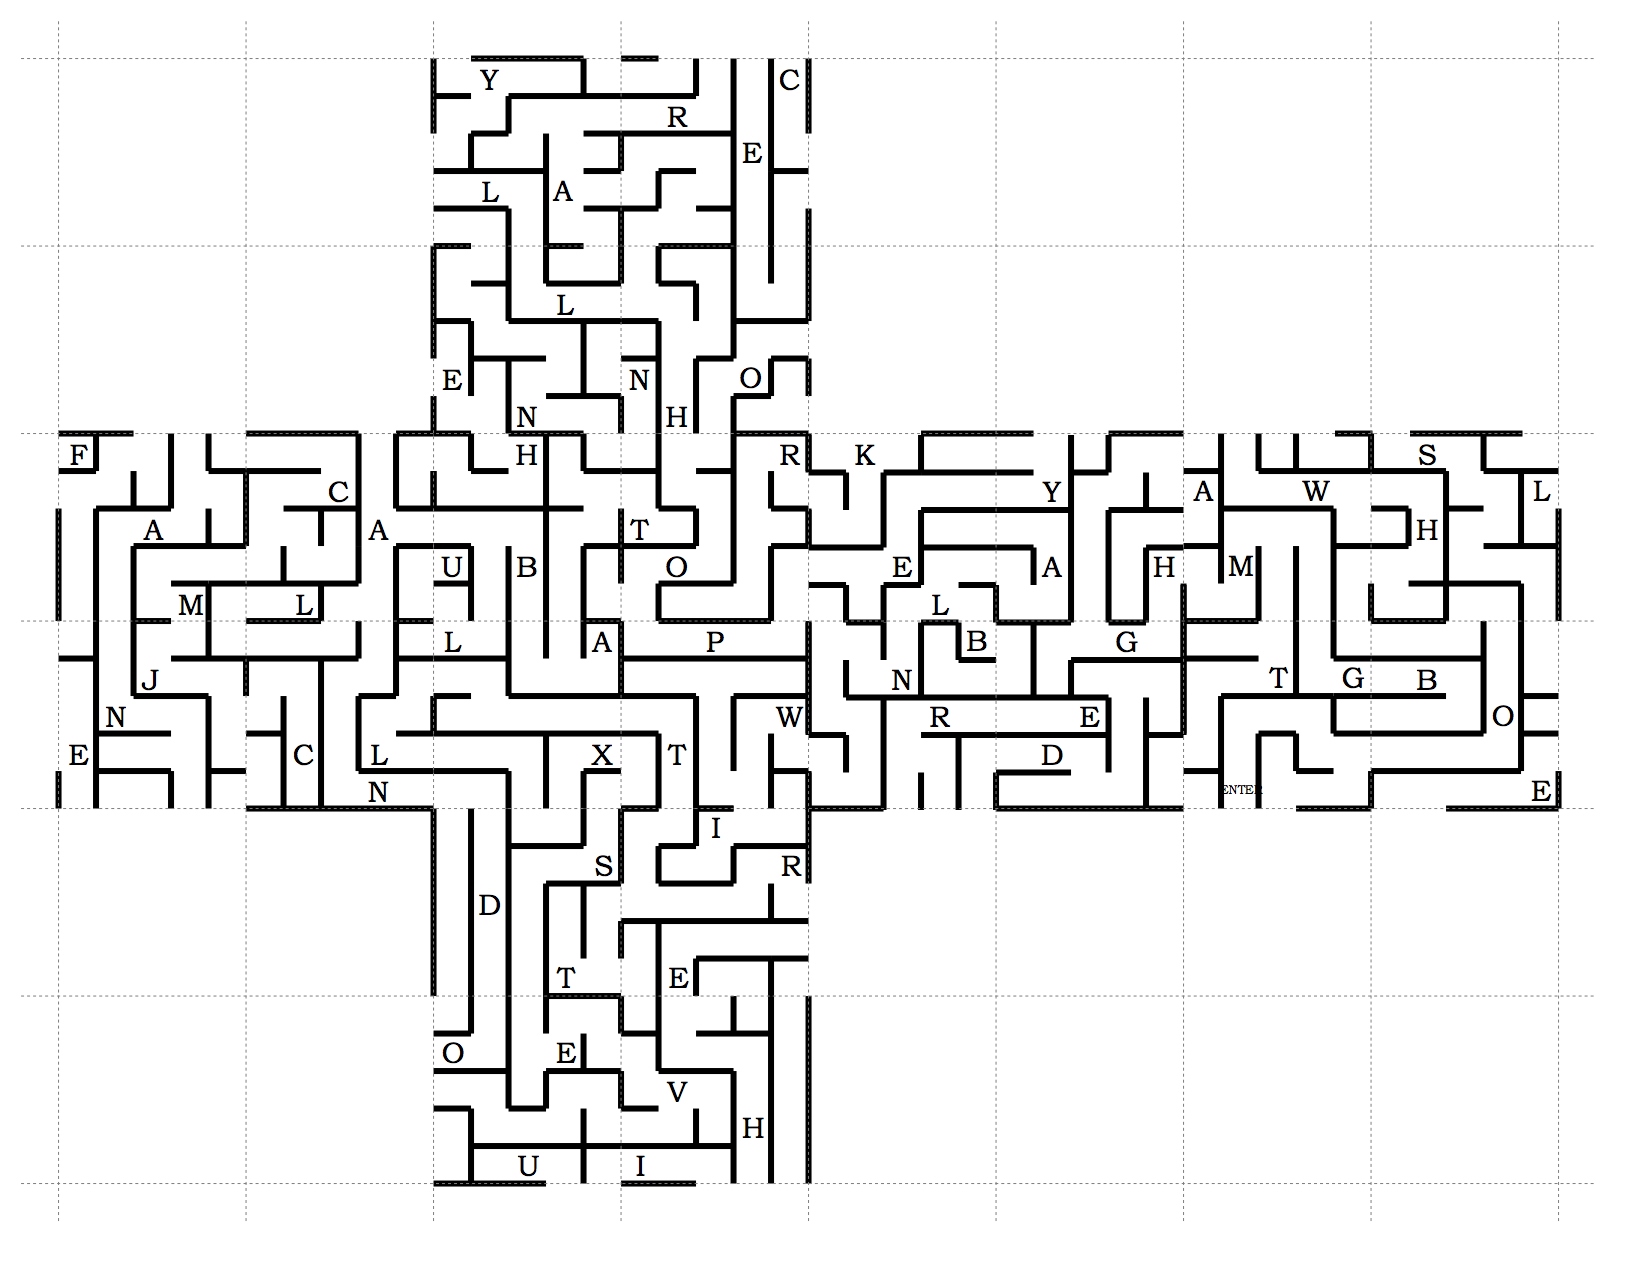 The Path Found: Solutions to the Maze of Games Campaign